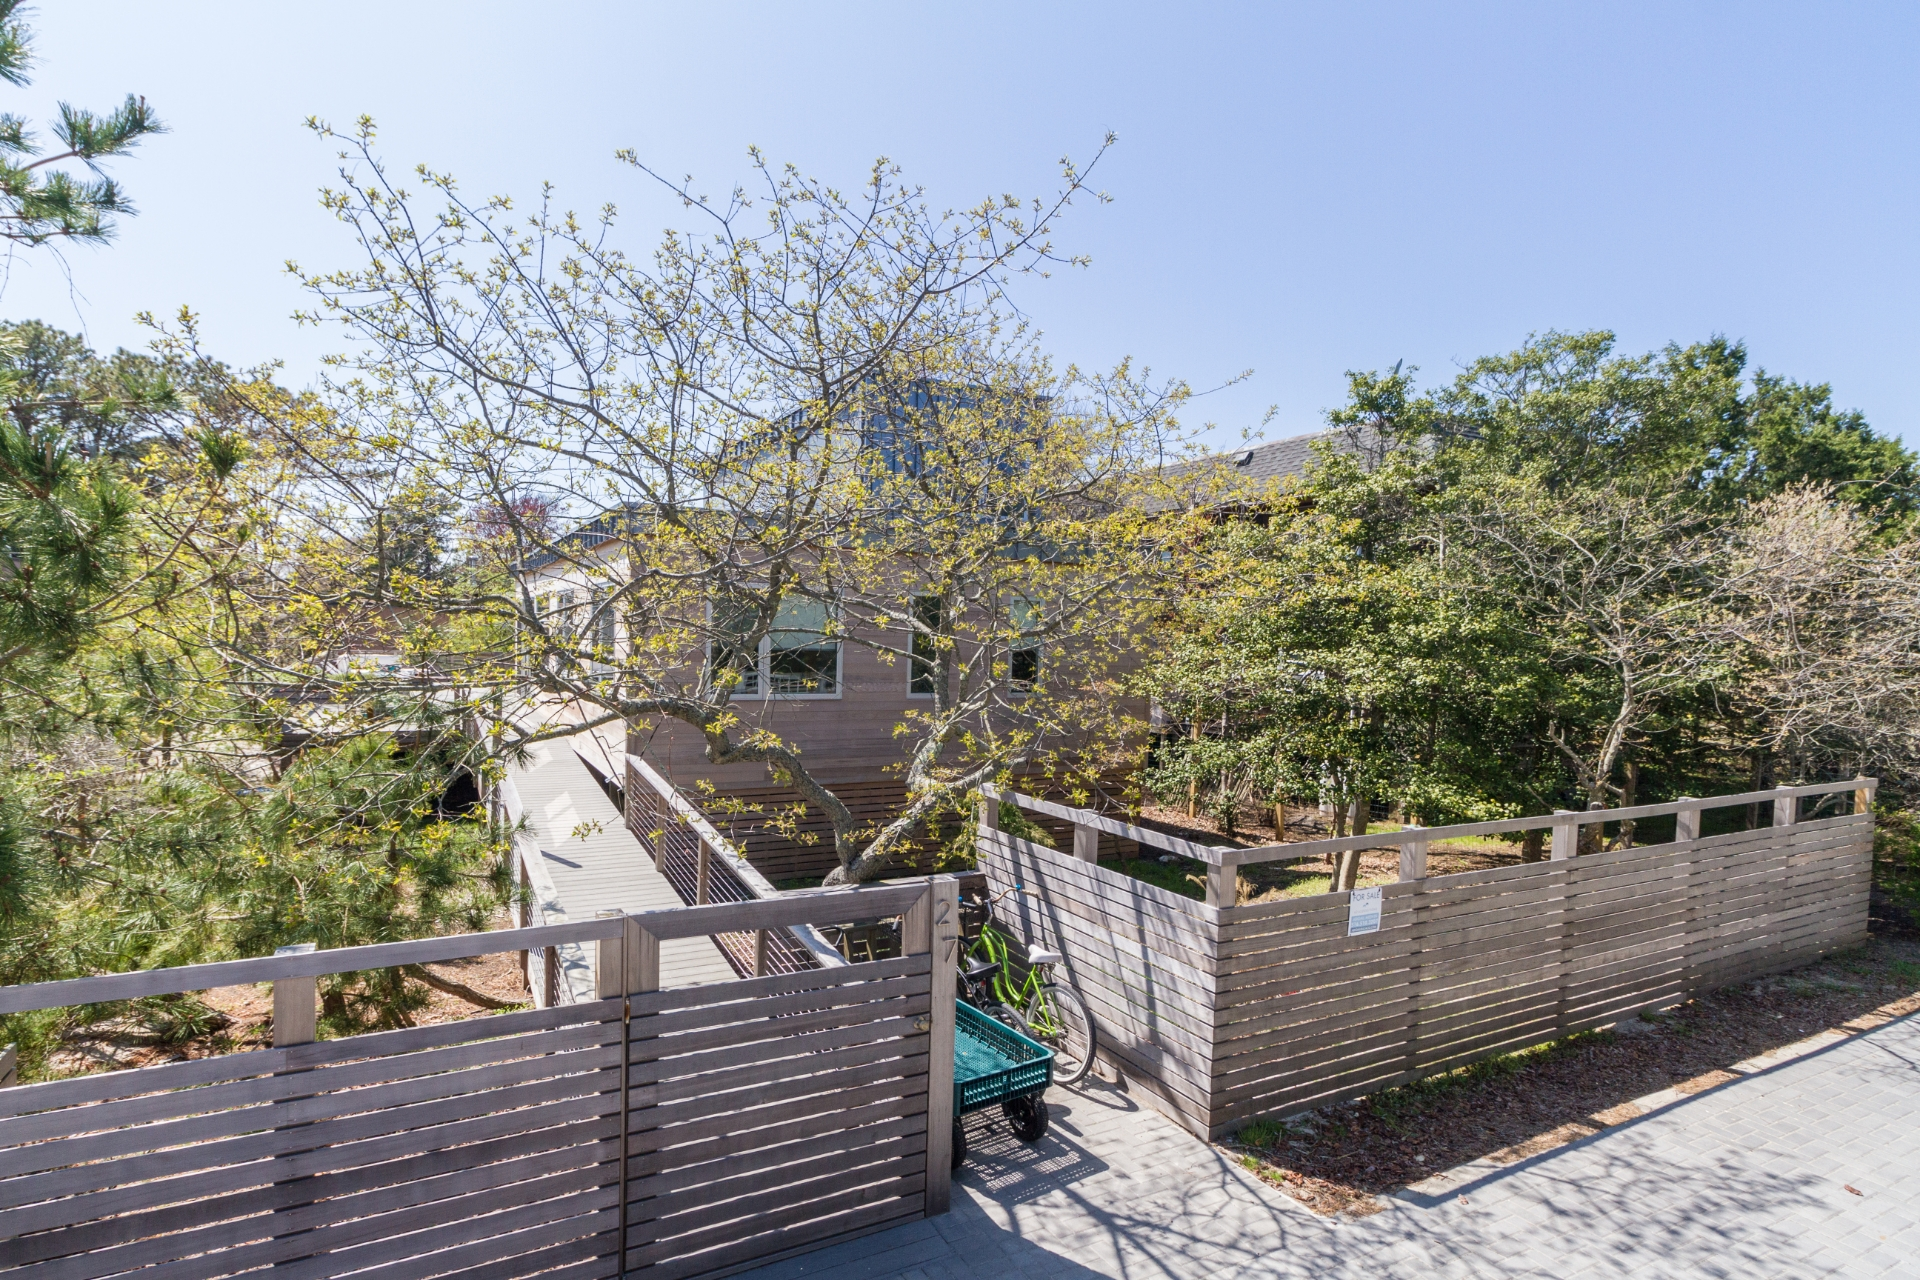 "Exclusive Listing <BR> Abigail Medvin Mago <BR> (516) 510-3207 <BR> Abigail@fireislandrealestate.com <BR> <BR>  5 bedroom, 3 full bath modern home just completed. Prime Seaview location, convenient to ferry, market, and lifeguarded beach. Top of the line finishes throughout. Chef's kitchen with huge 66"" refrigerator, Miele dishwasher, 48"" Wolf range with double oven and charbroiler so you can barbecue even if it rains.  8' island with wine refrigerator and microwave drawer. Stunning master suite with king sized bed, luxurious en-suite bath, walk in closet, and private balcony with bay views. Large, sunny south facing deck. 2-zone central air conditioning.  Separate accessory cottage. This impeccable modern home with room for your whole family can be yours.  Sold fully furnished. Flood Insurance: $941"